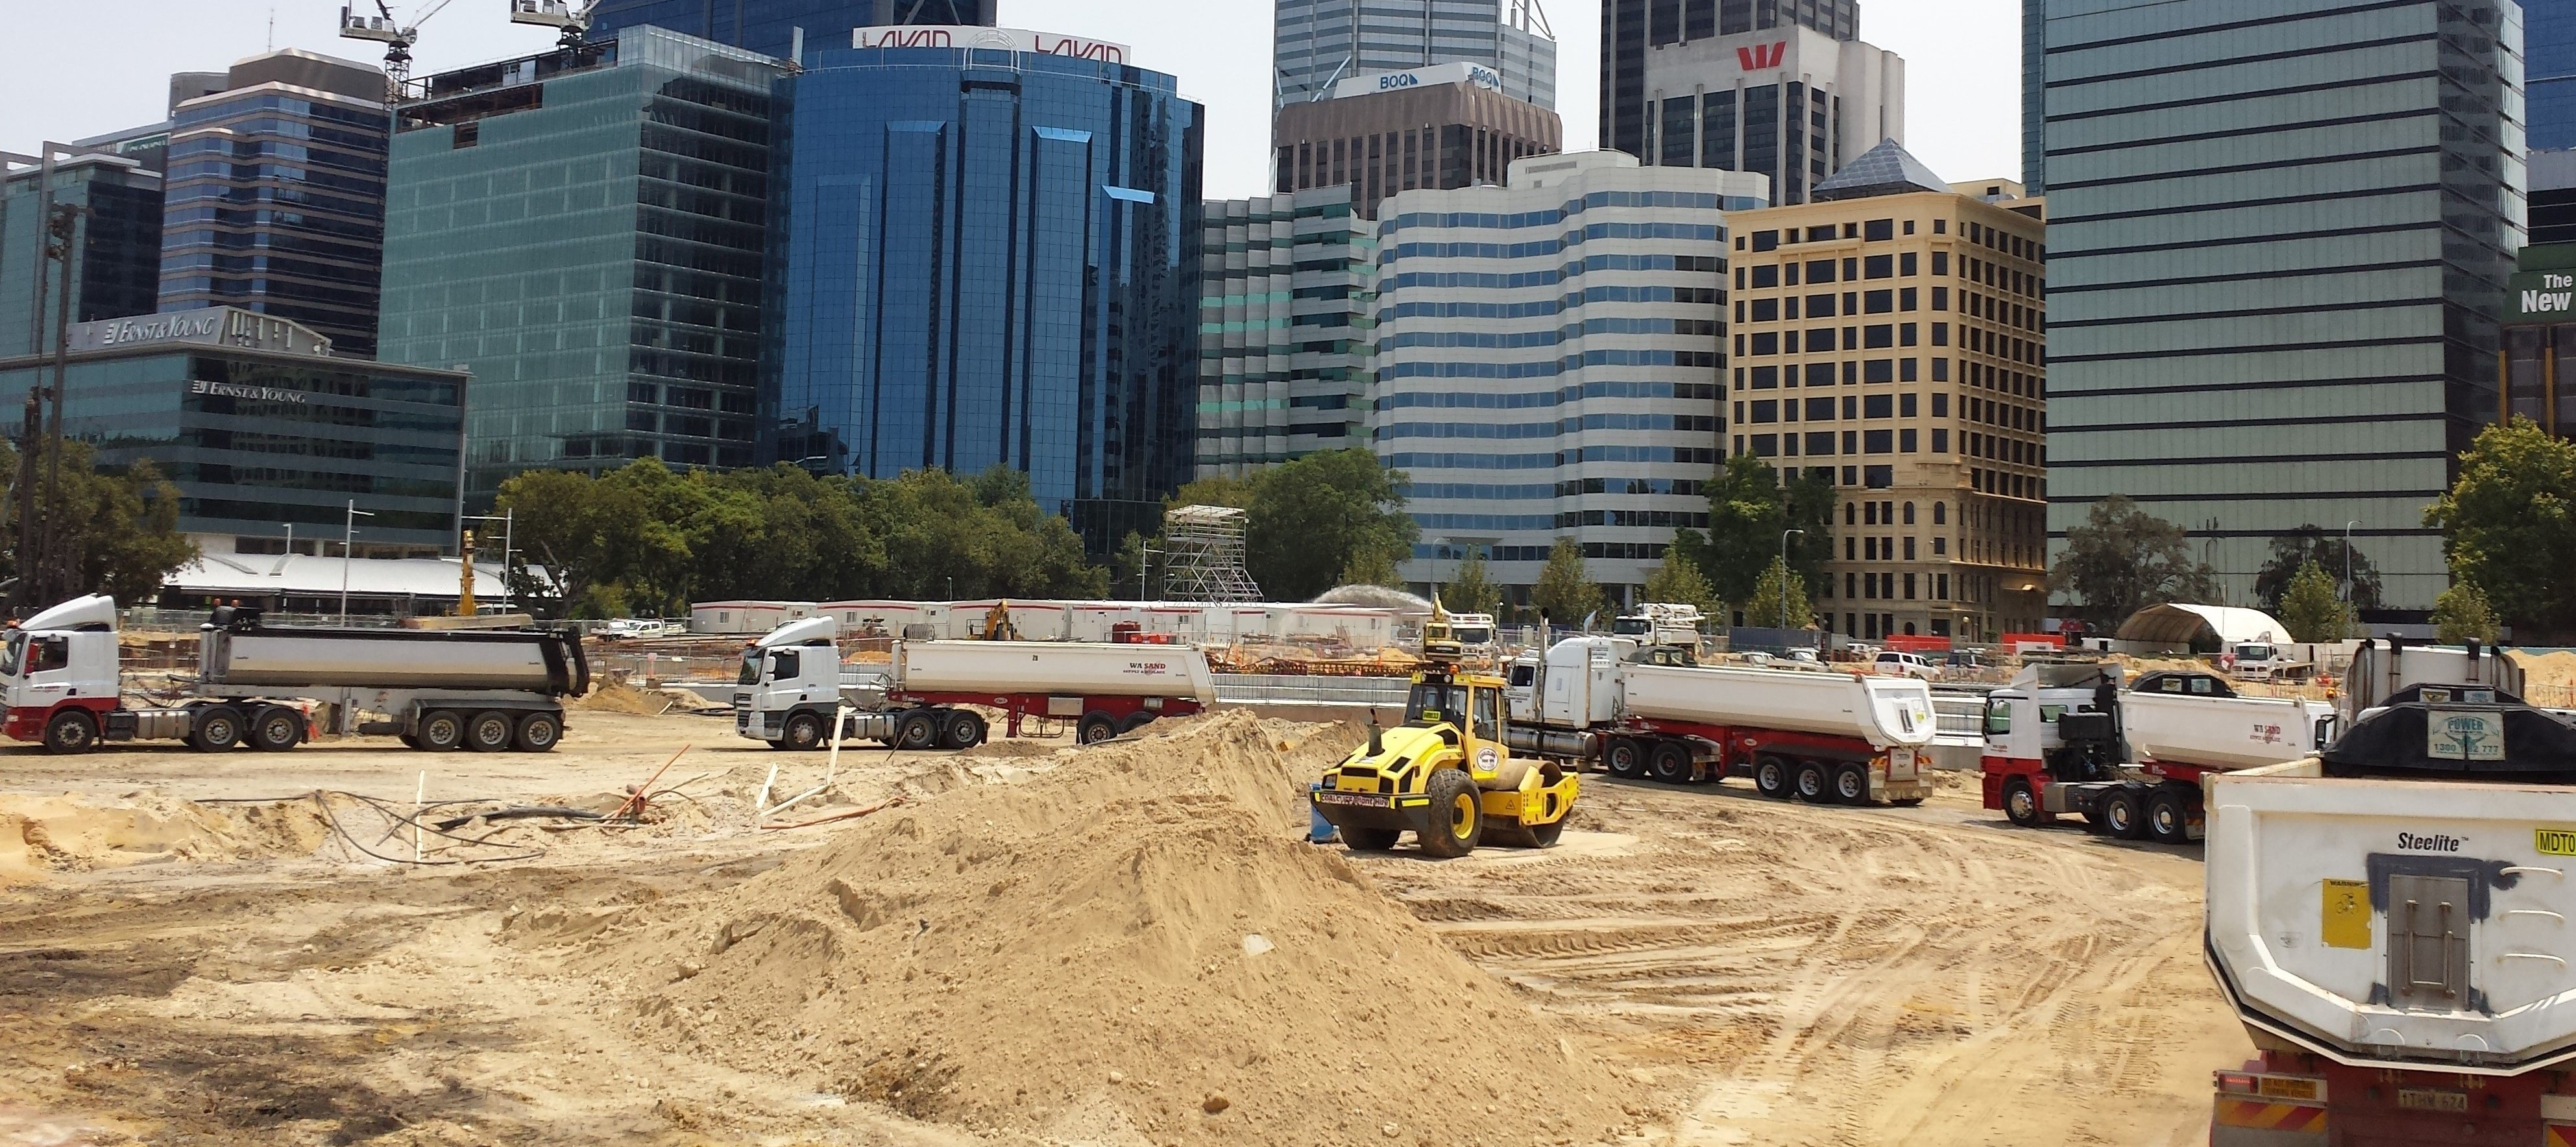 WA Sand Supply and Haulage trucks on site